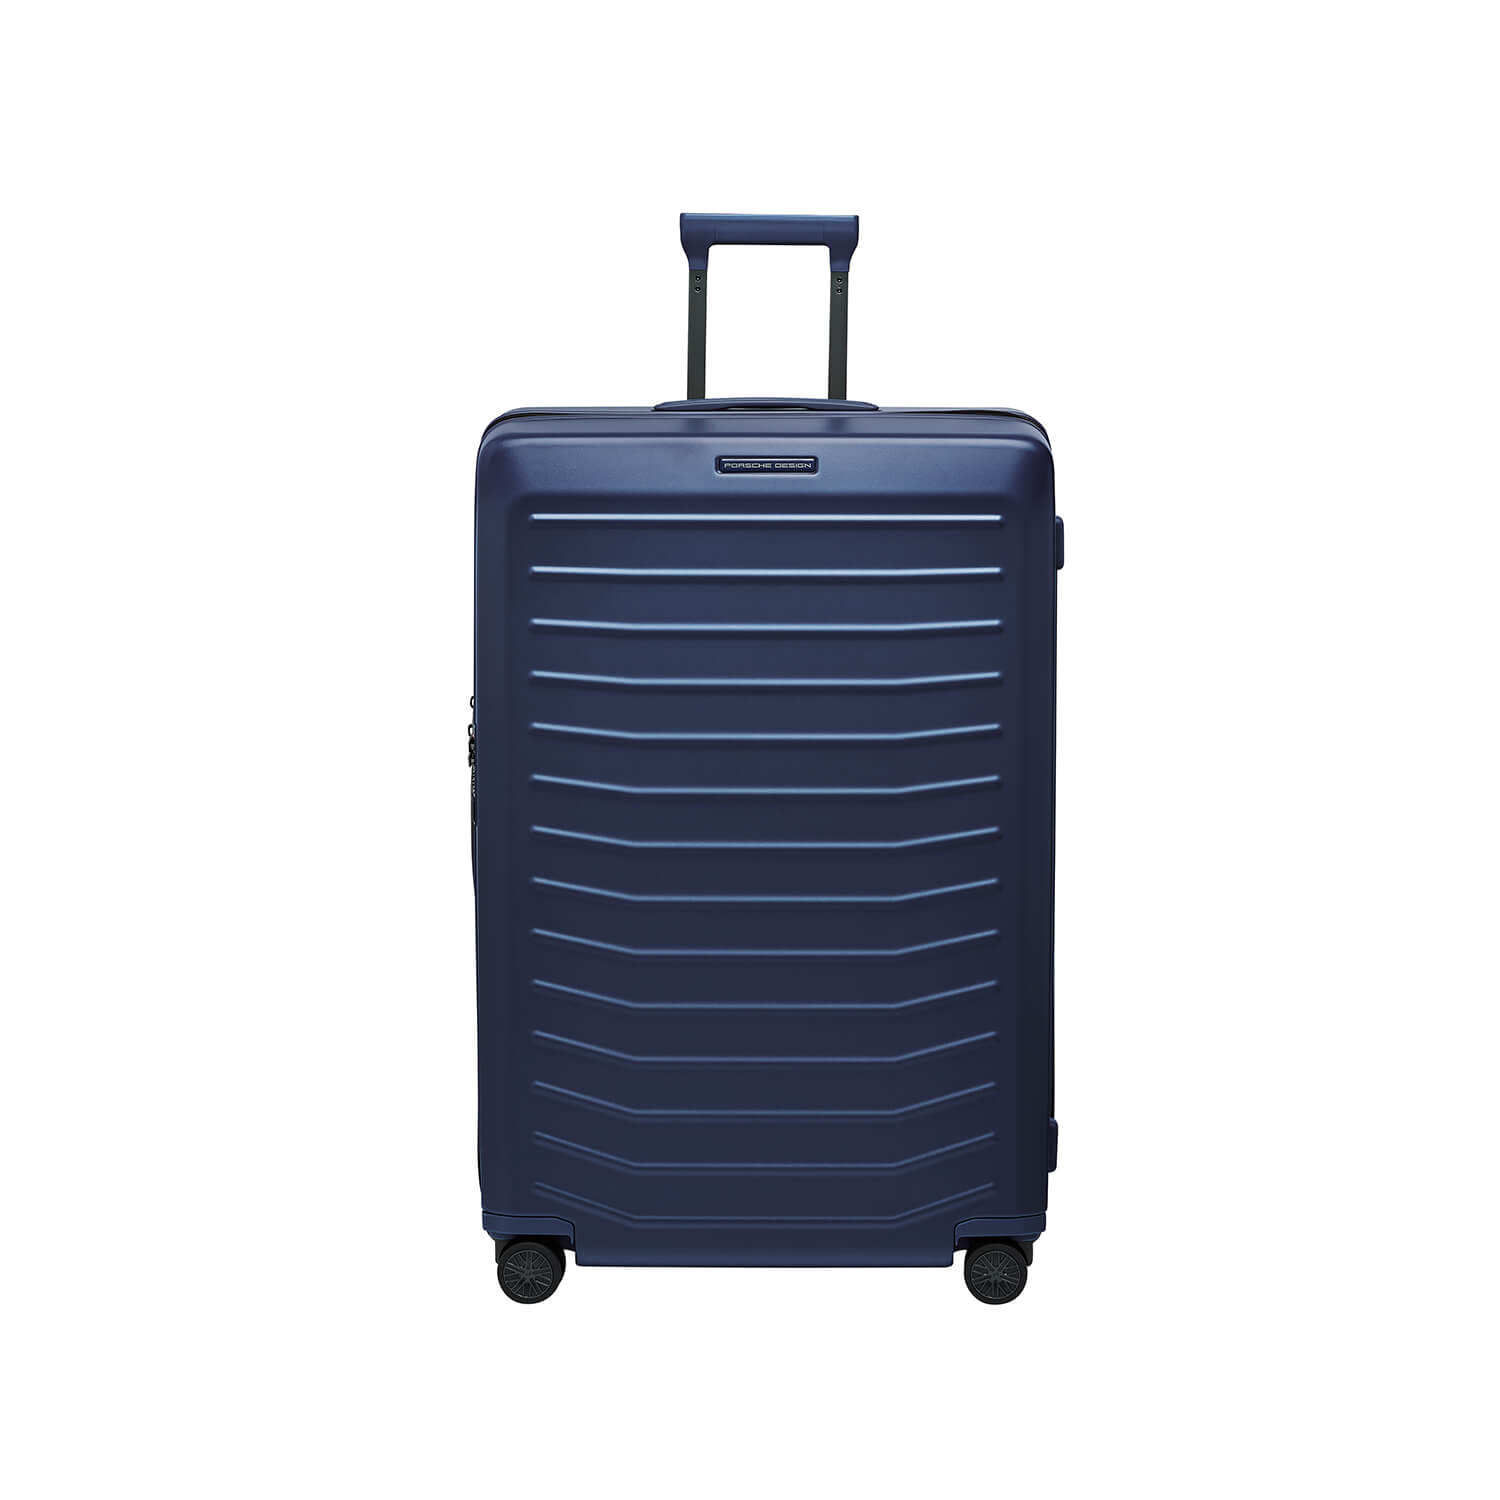 "Porsche Roadster Hardcase Spinner Expandable by Brics (Color: Dark Blue Matte, Size: 32"")"